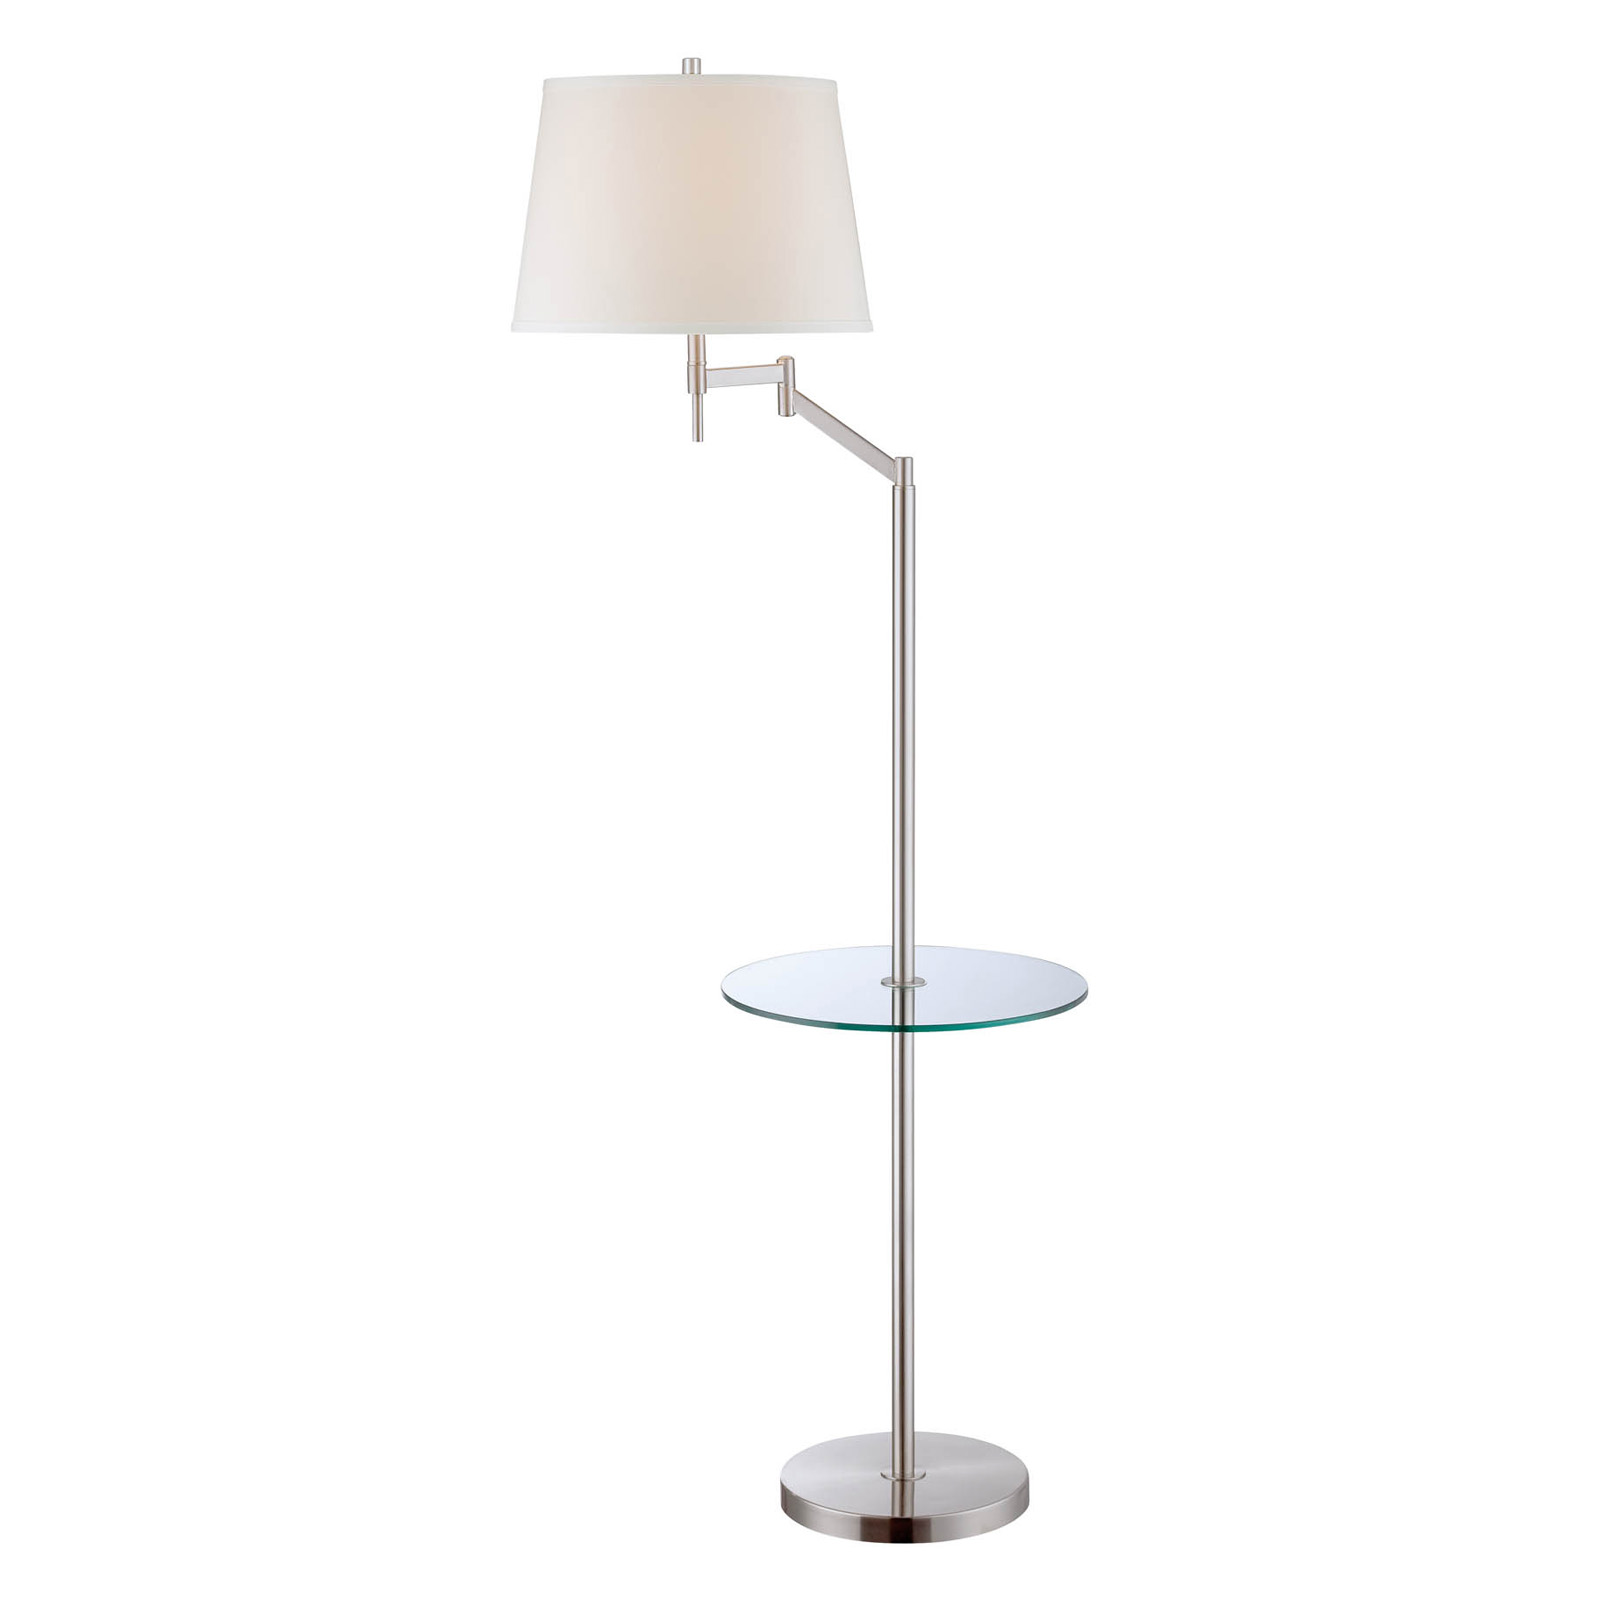 Lite Source Eveleen Swing Arm Floor Lamp With Tray